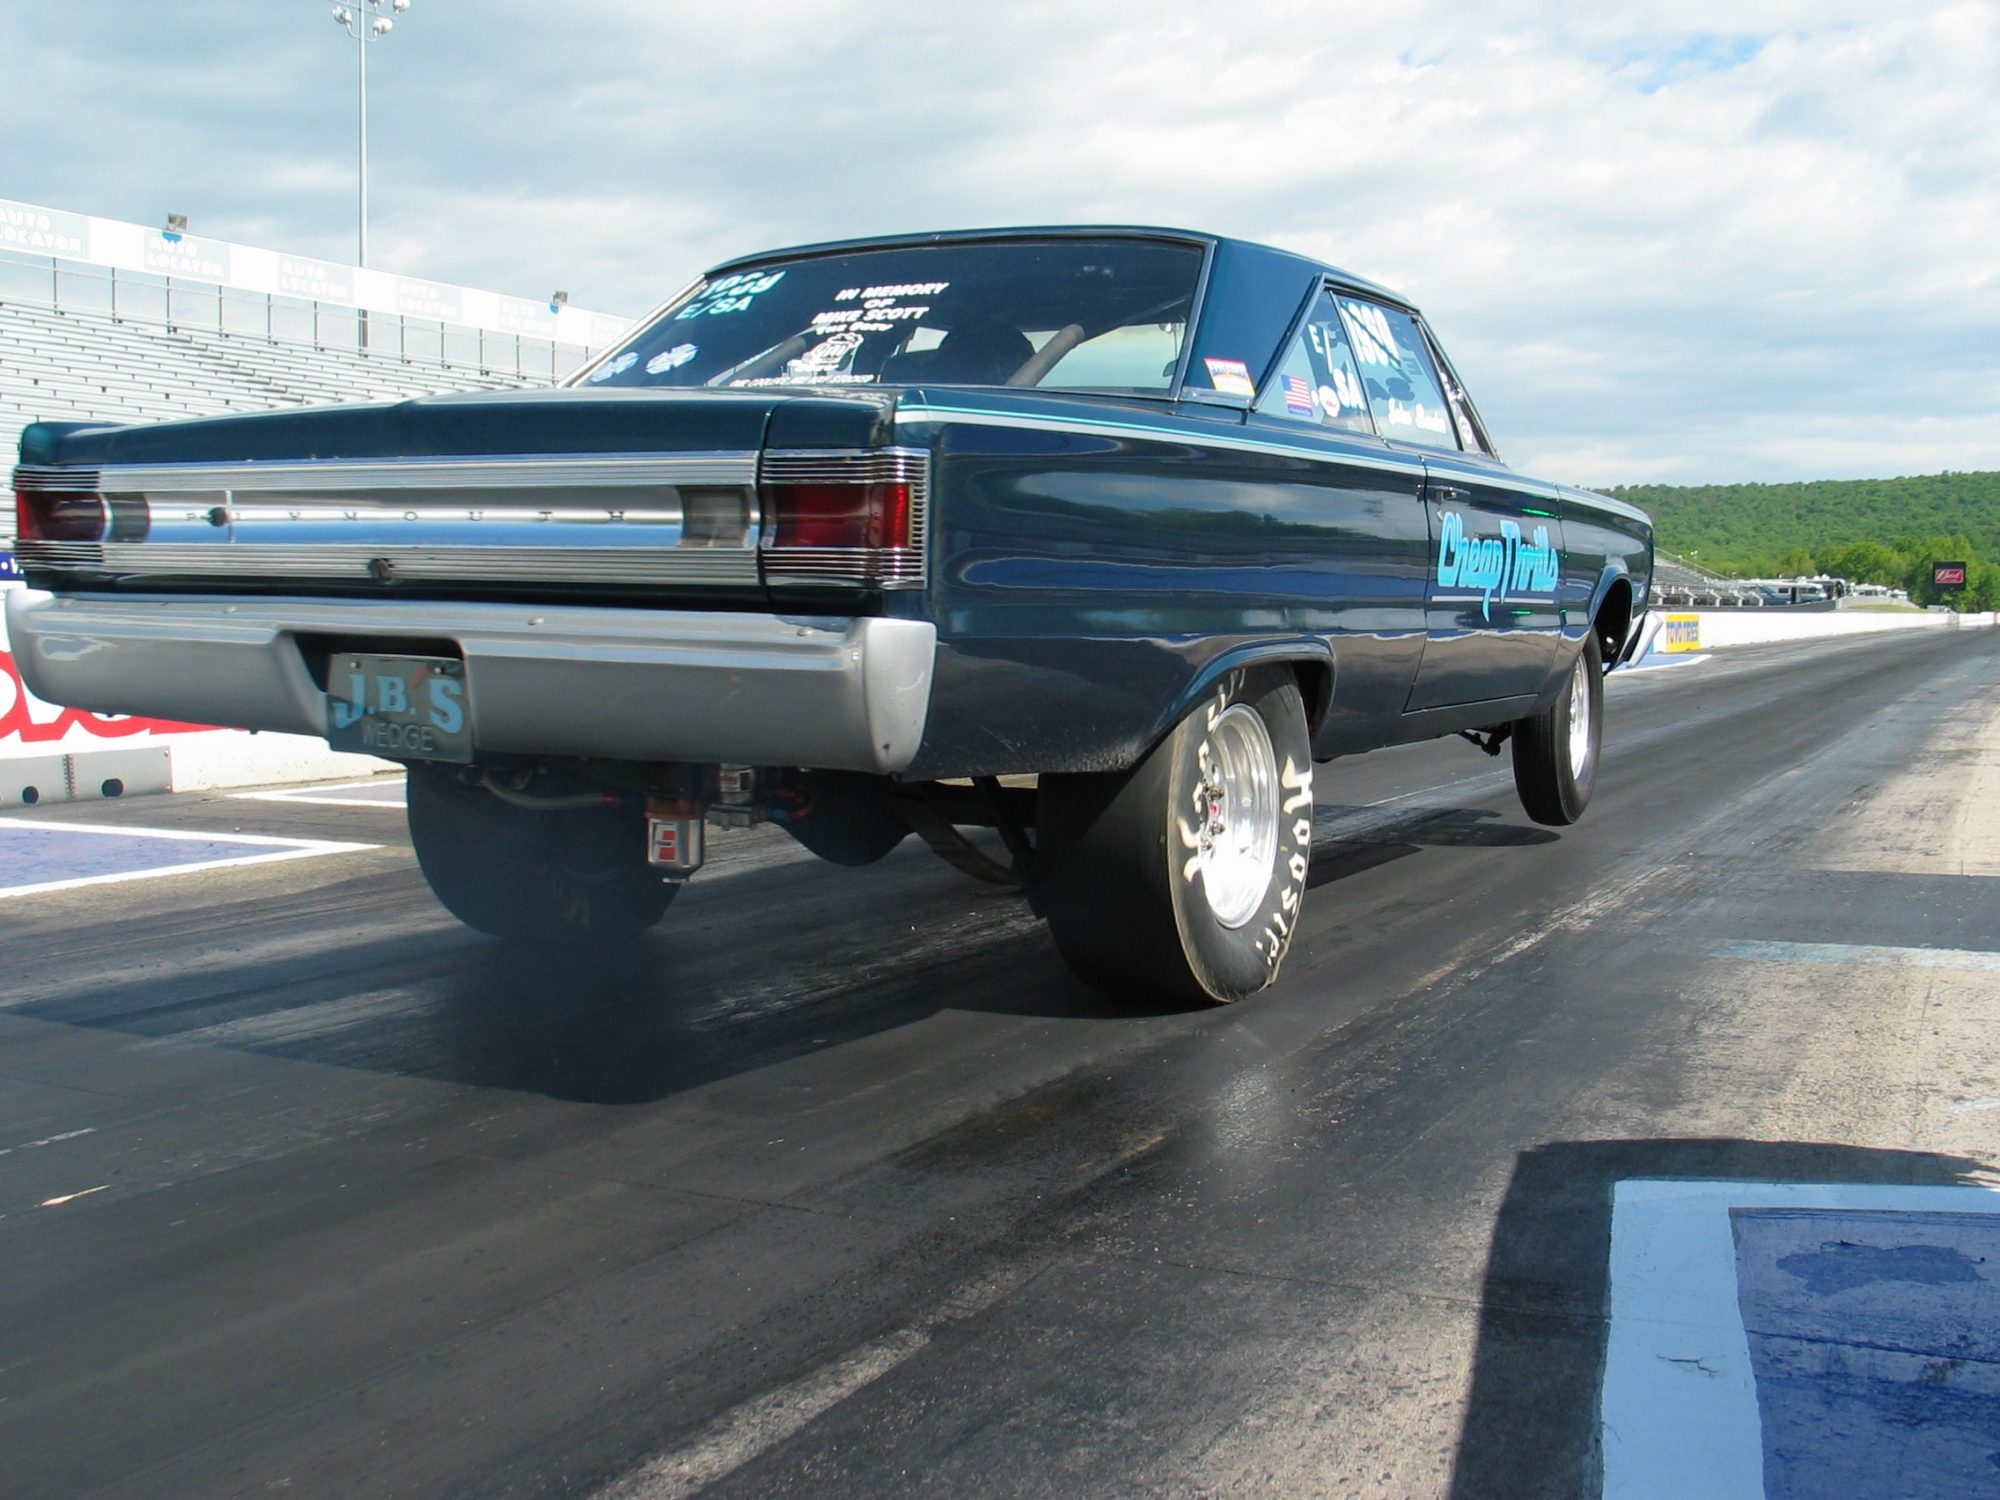 1967 Plymouth Satellite launching off the start line